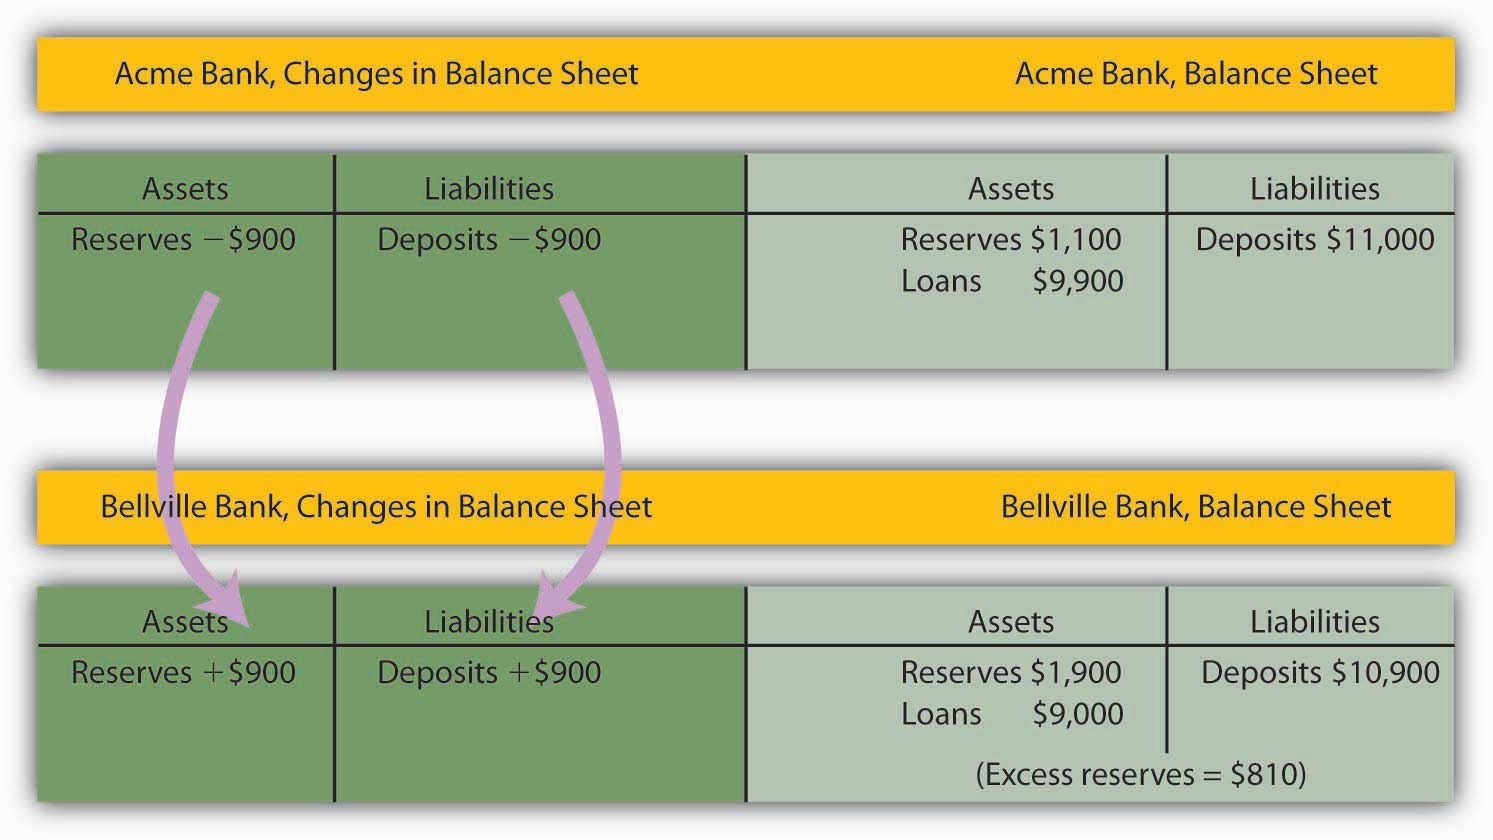 Acme Bank, Changes in Balance Sheet 3